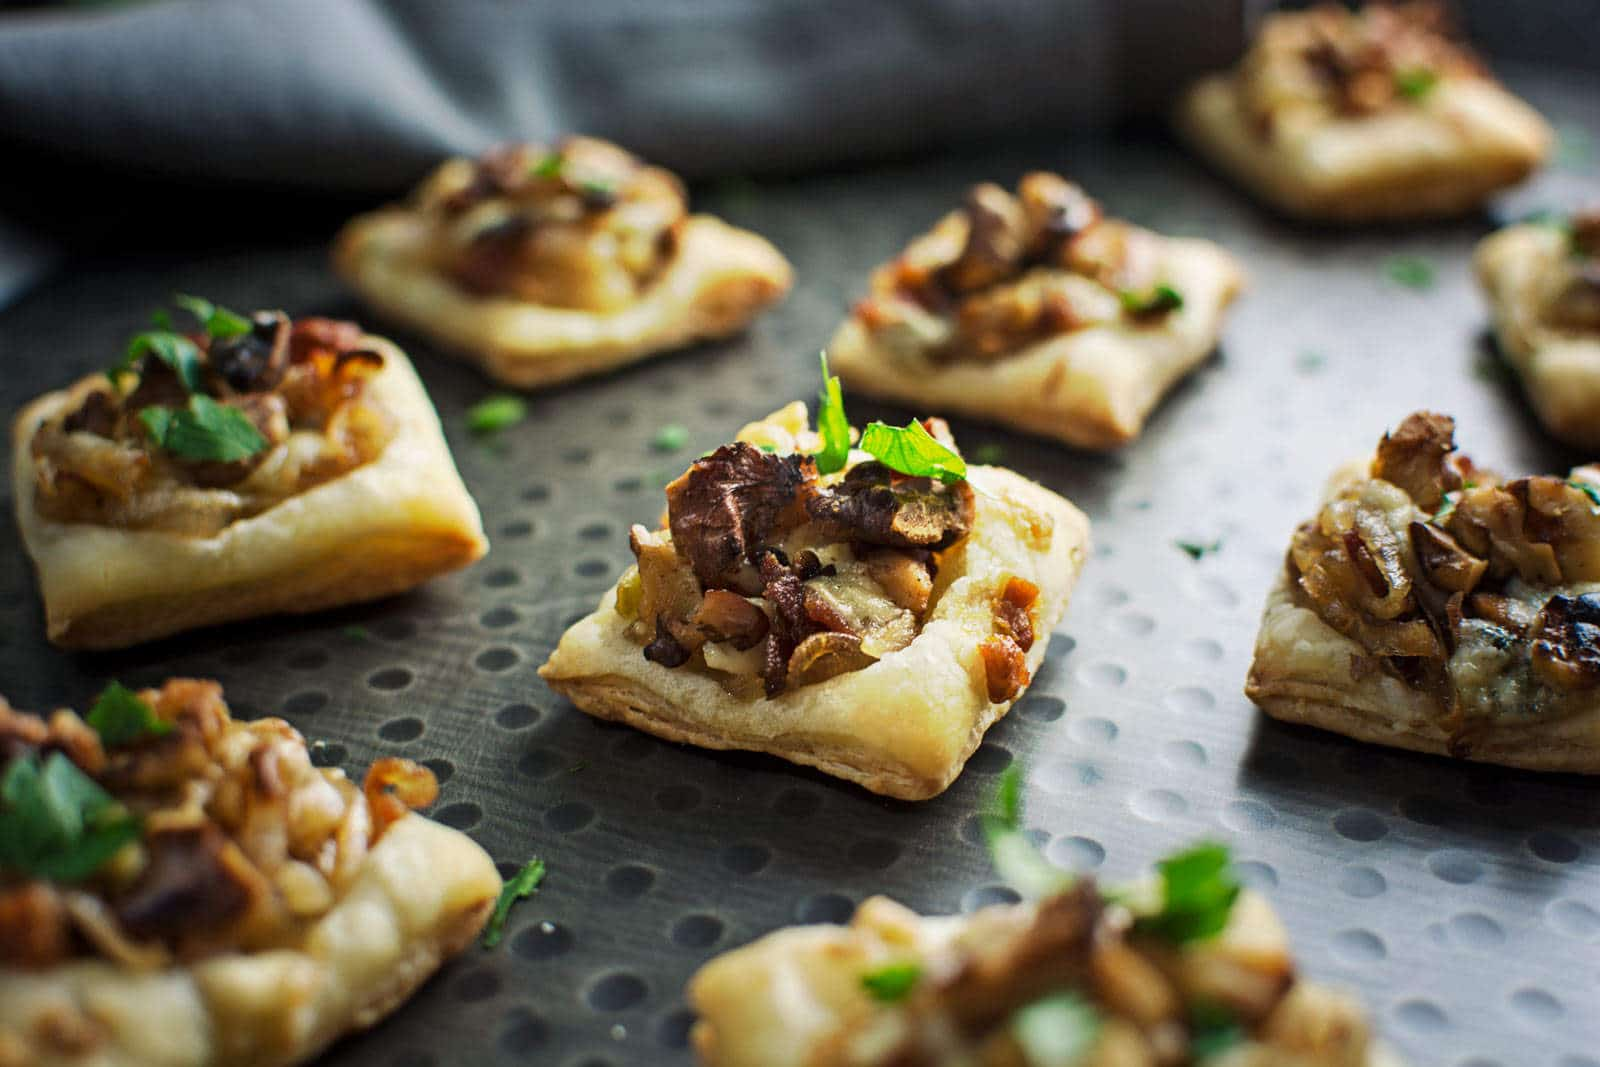 Caramelized Shallot Tarts